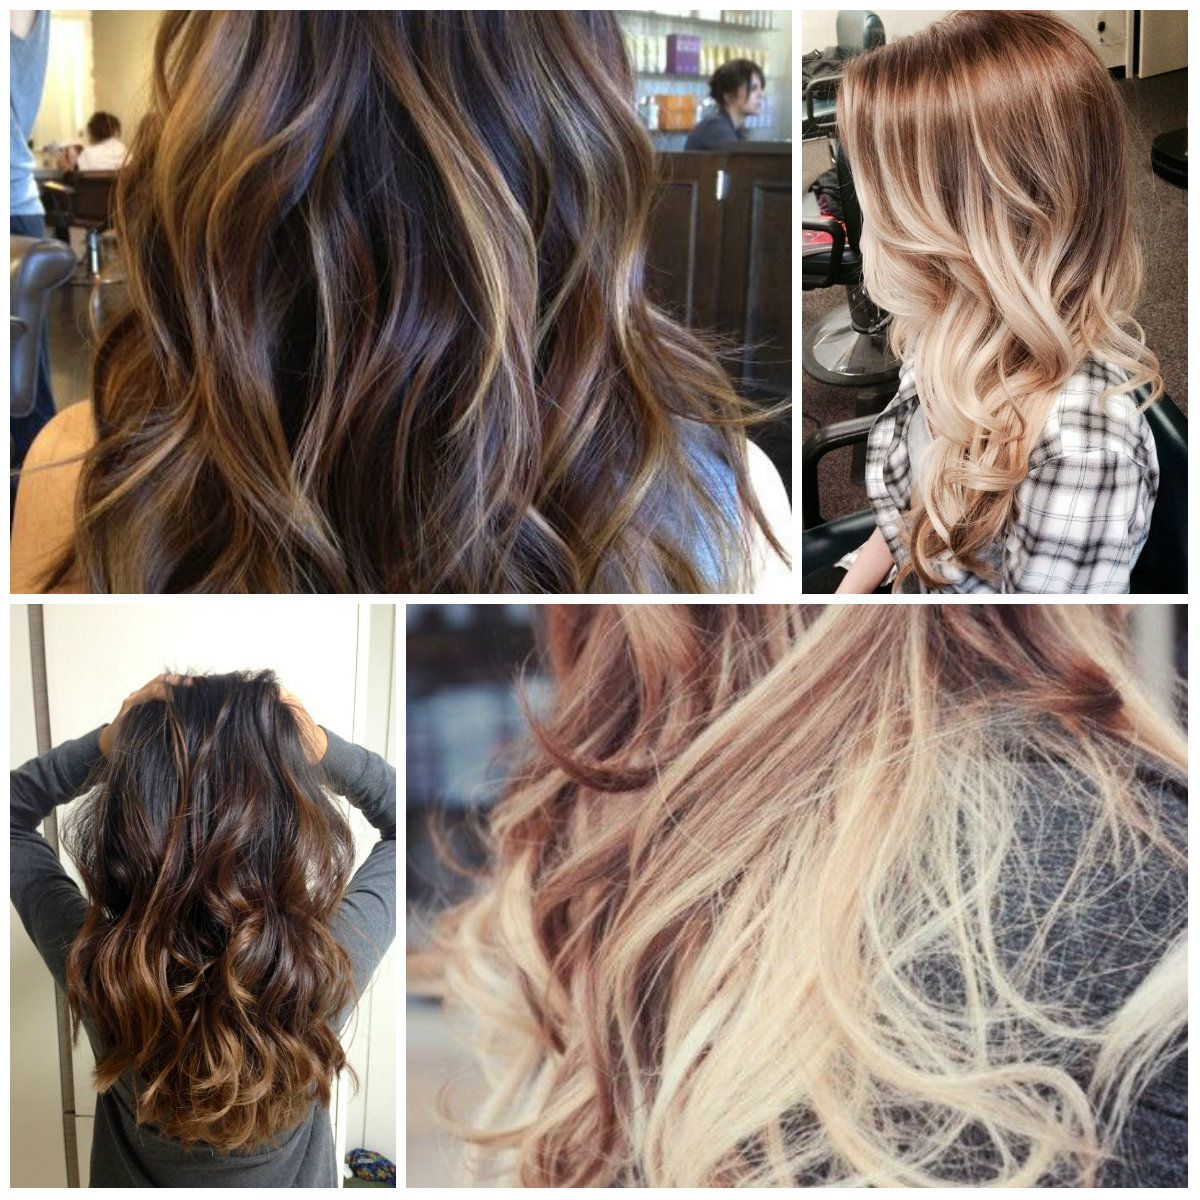 2017 Ombre Hair Ideas To Try At Home Best Hair Color Trends 2017 Top Hair Color Ideas For You